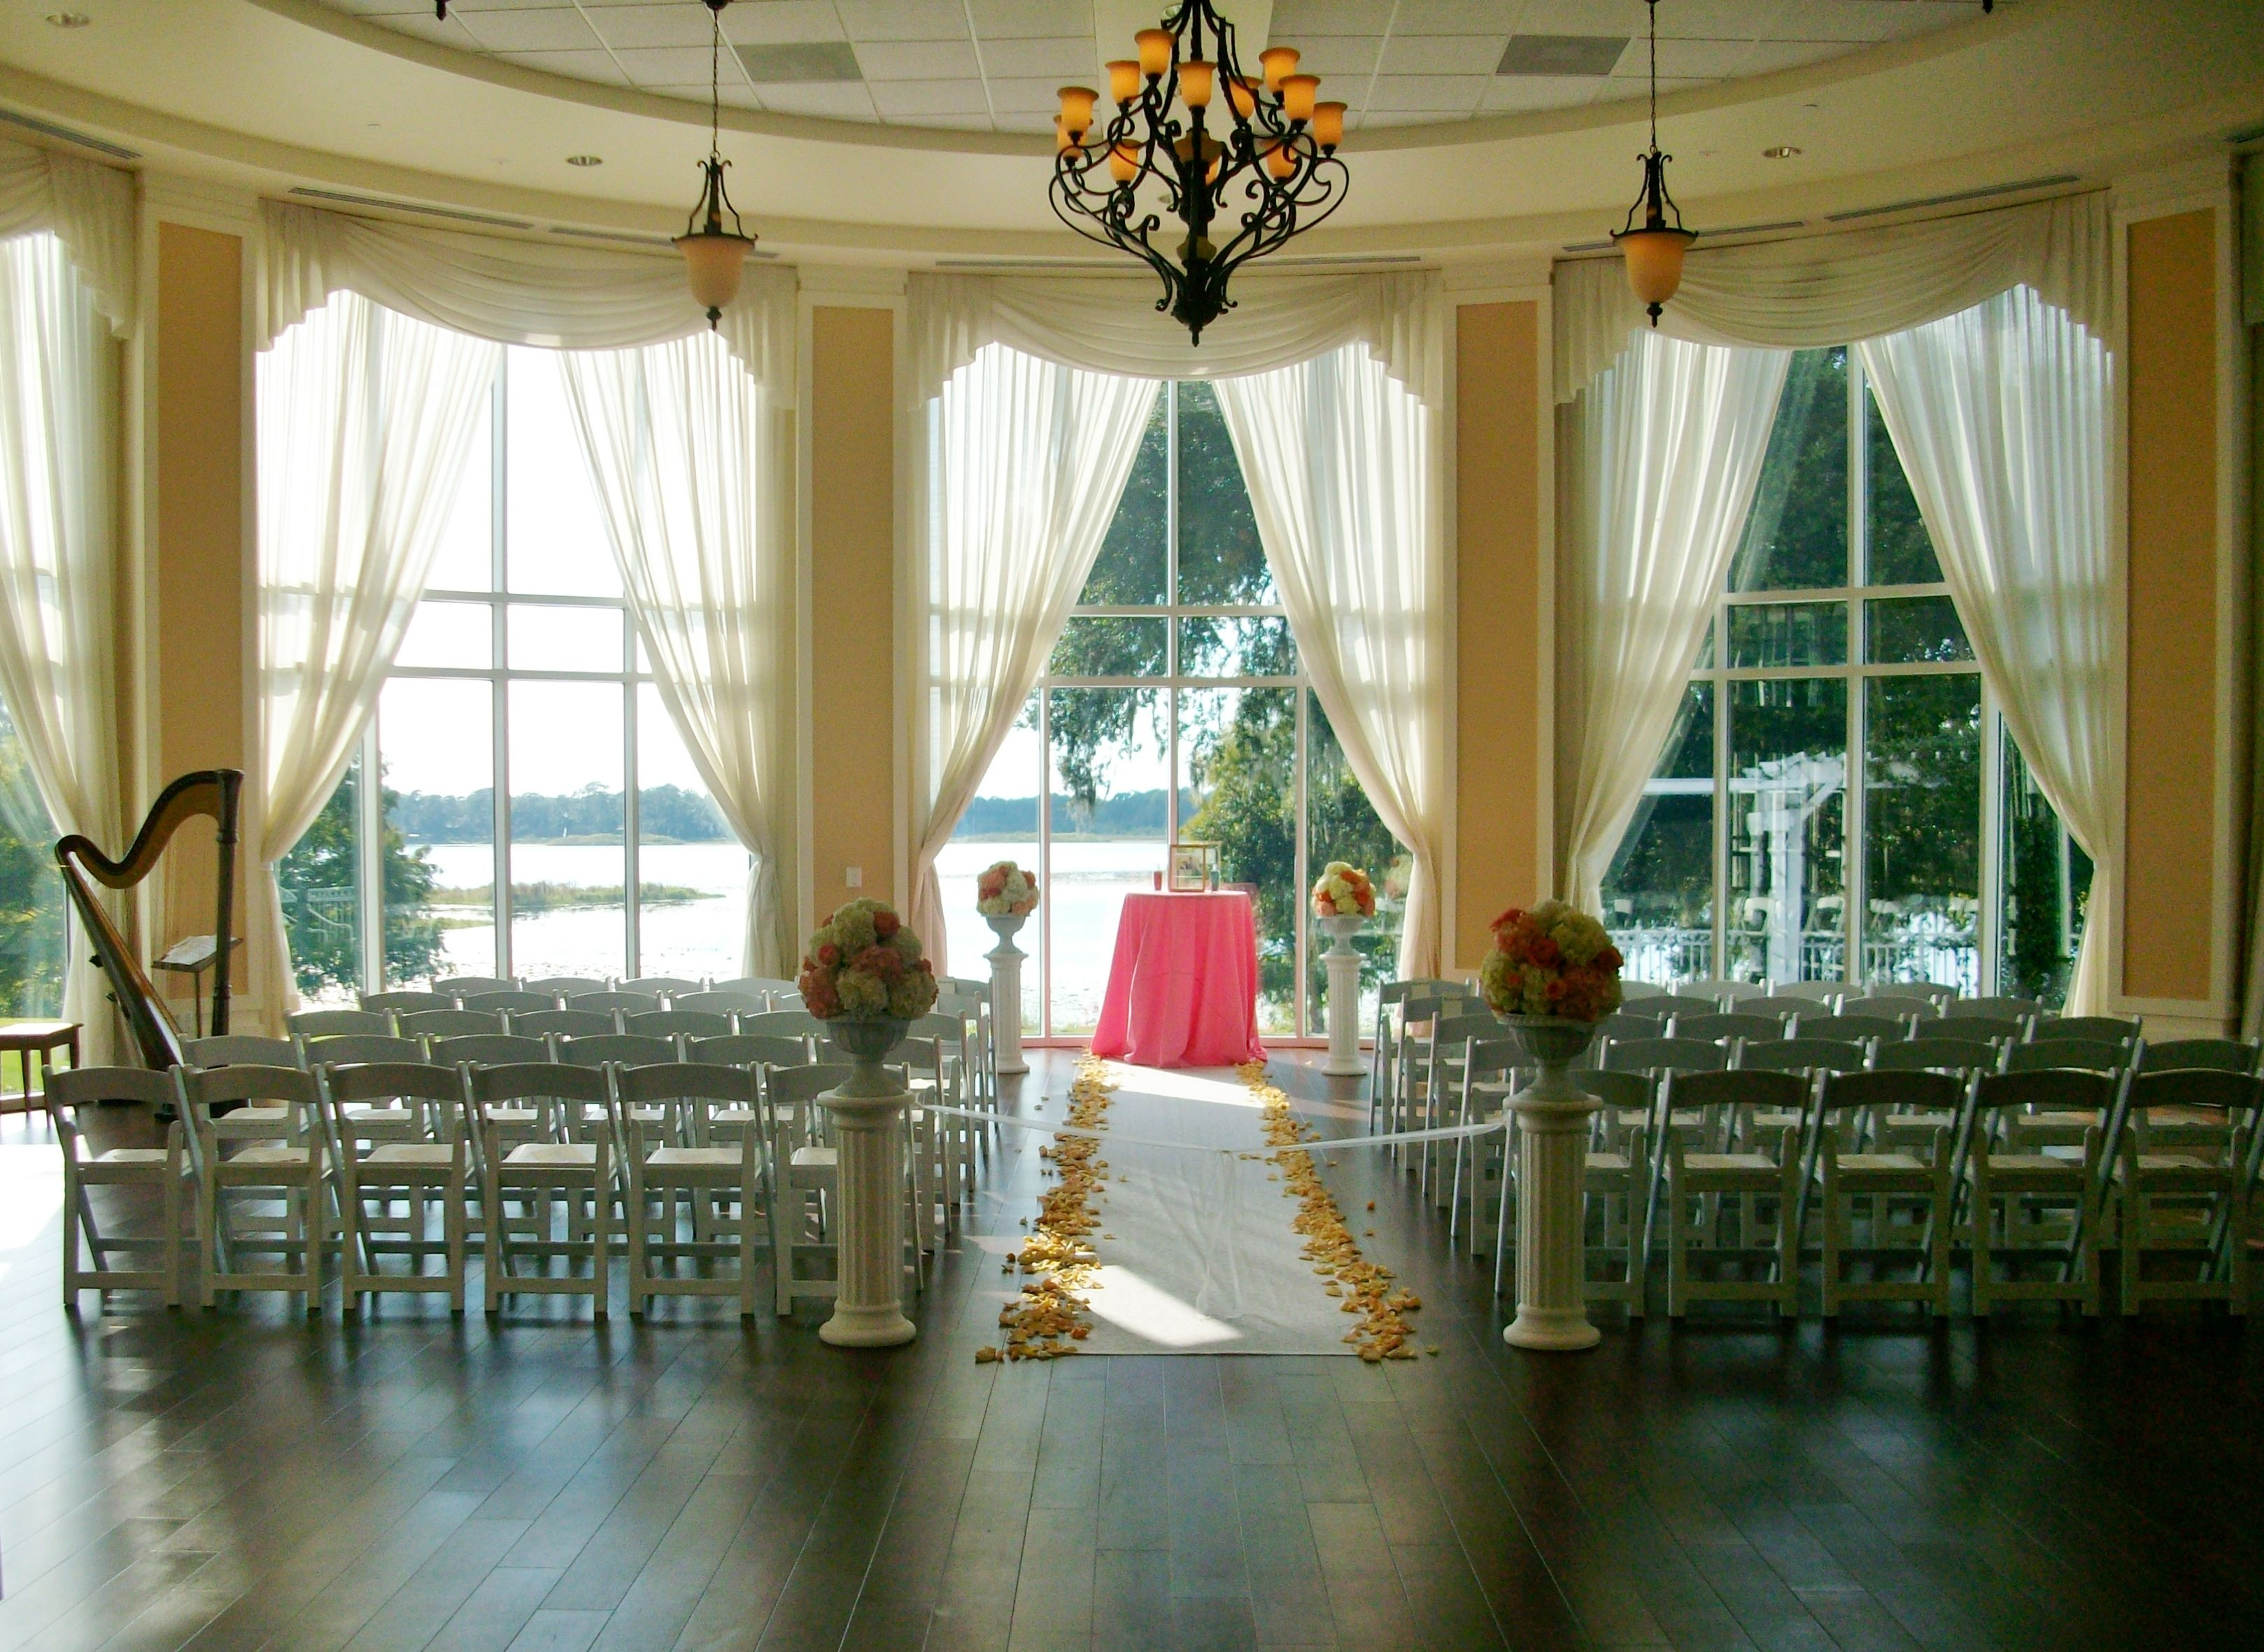 Wedding Ceremony In The Rotunda At The Lake Mary Events Center Florida Beautiful Wedding Venue With Lake Vie Wedding Dance Songs Event Center Orlando Wedding